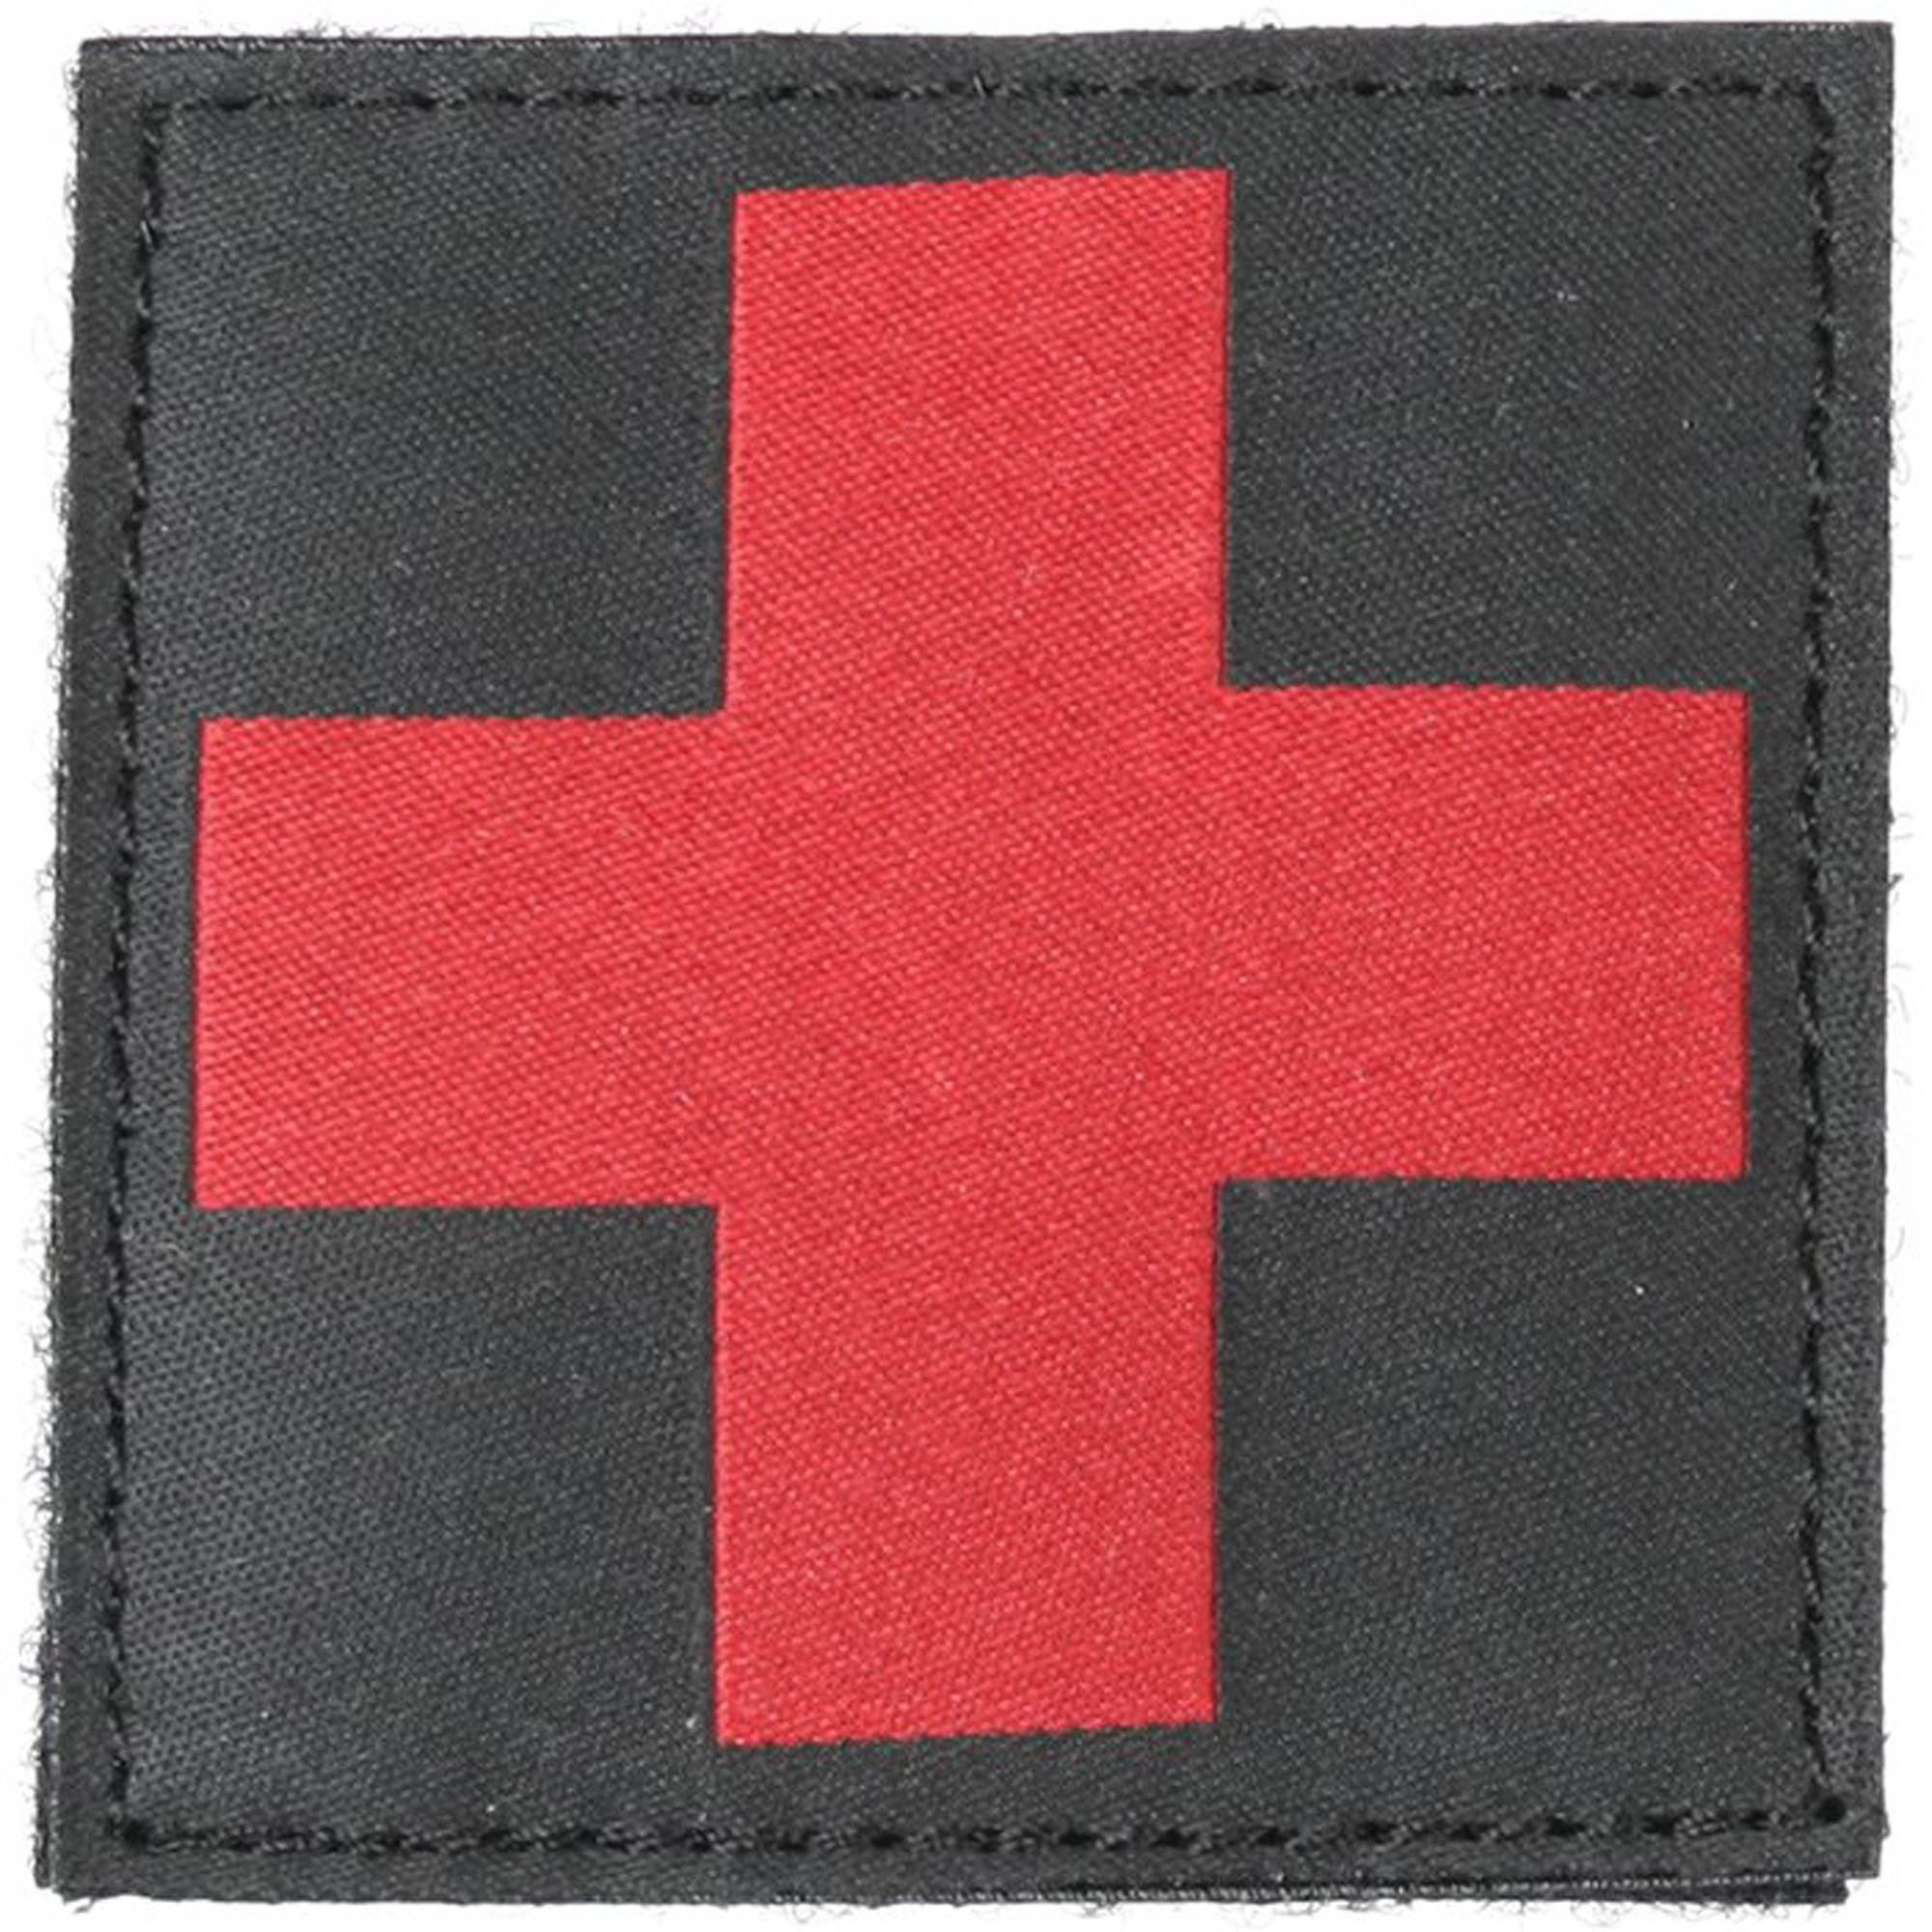 This universal Red Cross Medic ID Patch is perfect for pouches and garments. It offers hook & loop attachment with a loop panel that can be sewn onto gear and clothing.